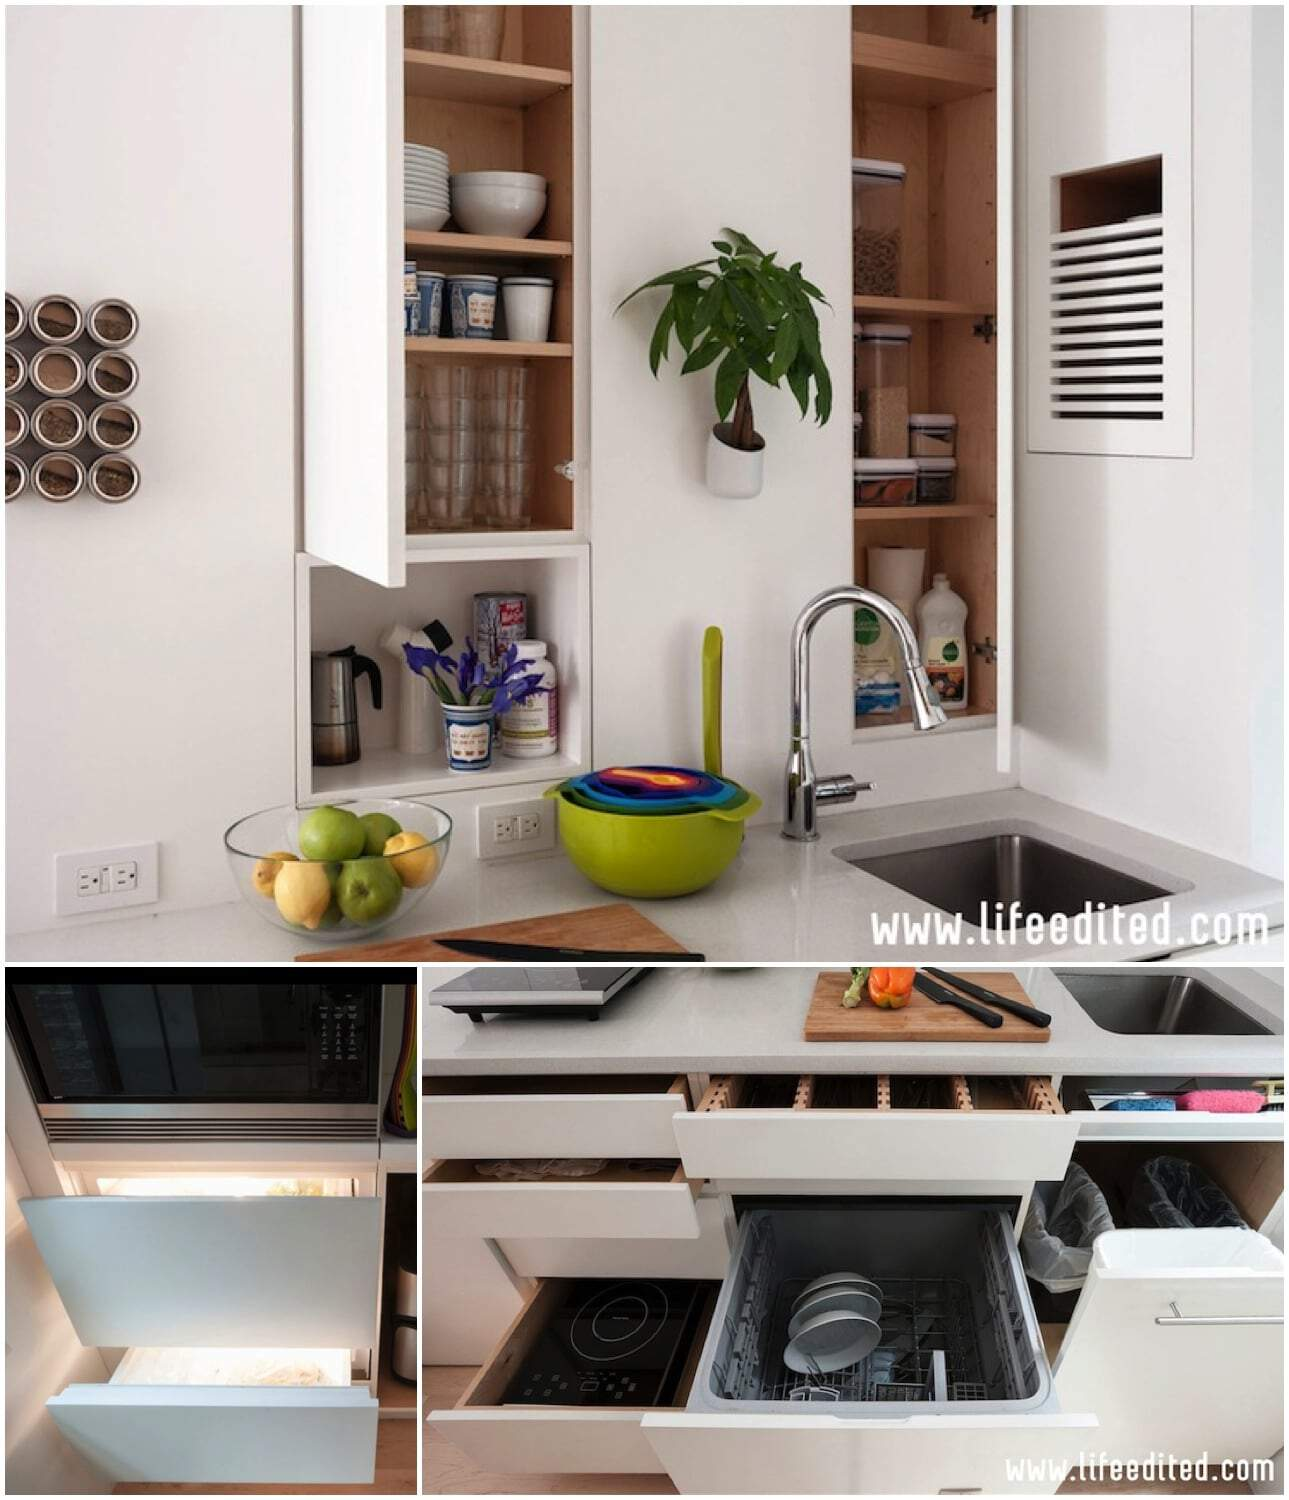 Compact kitchen with all you need